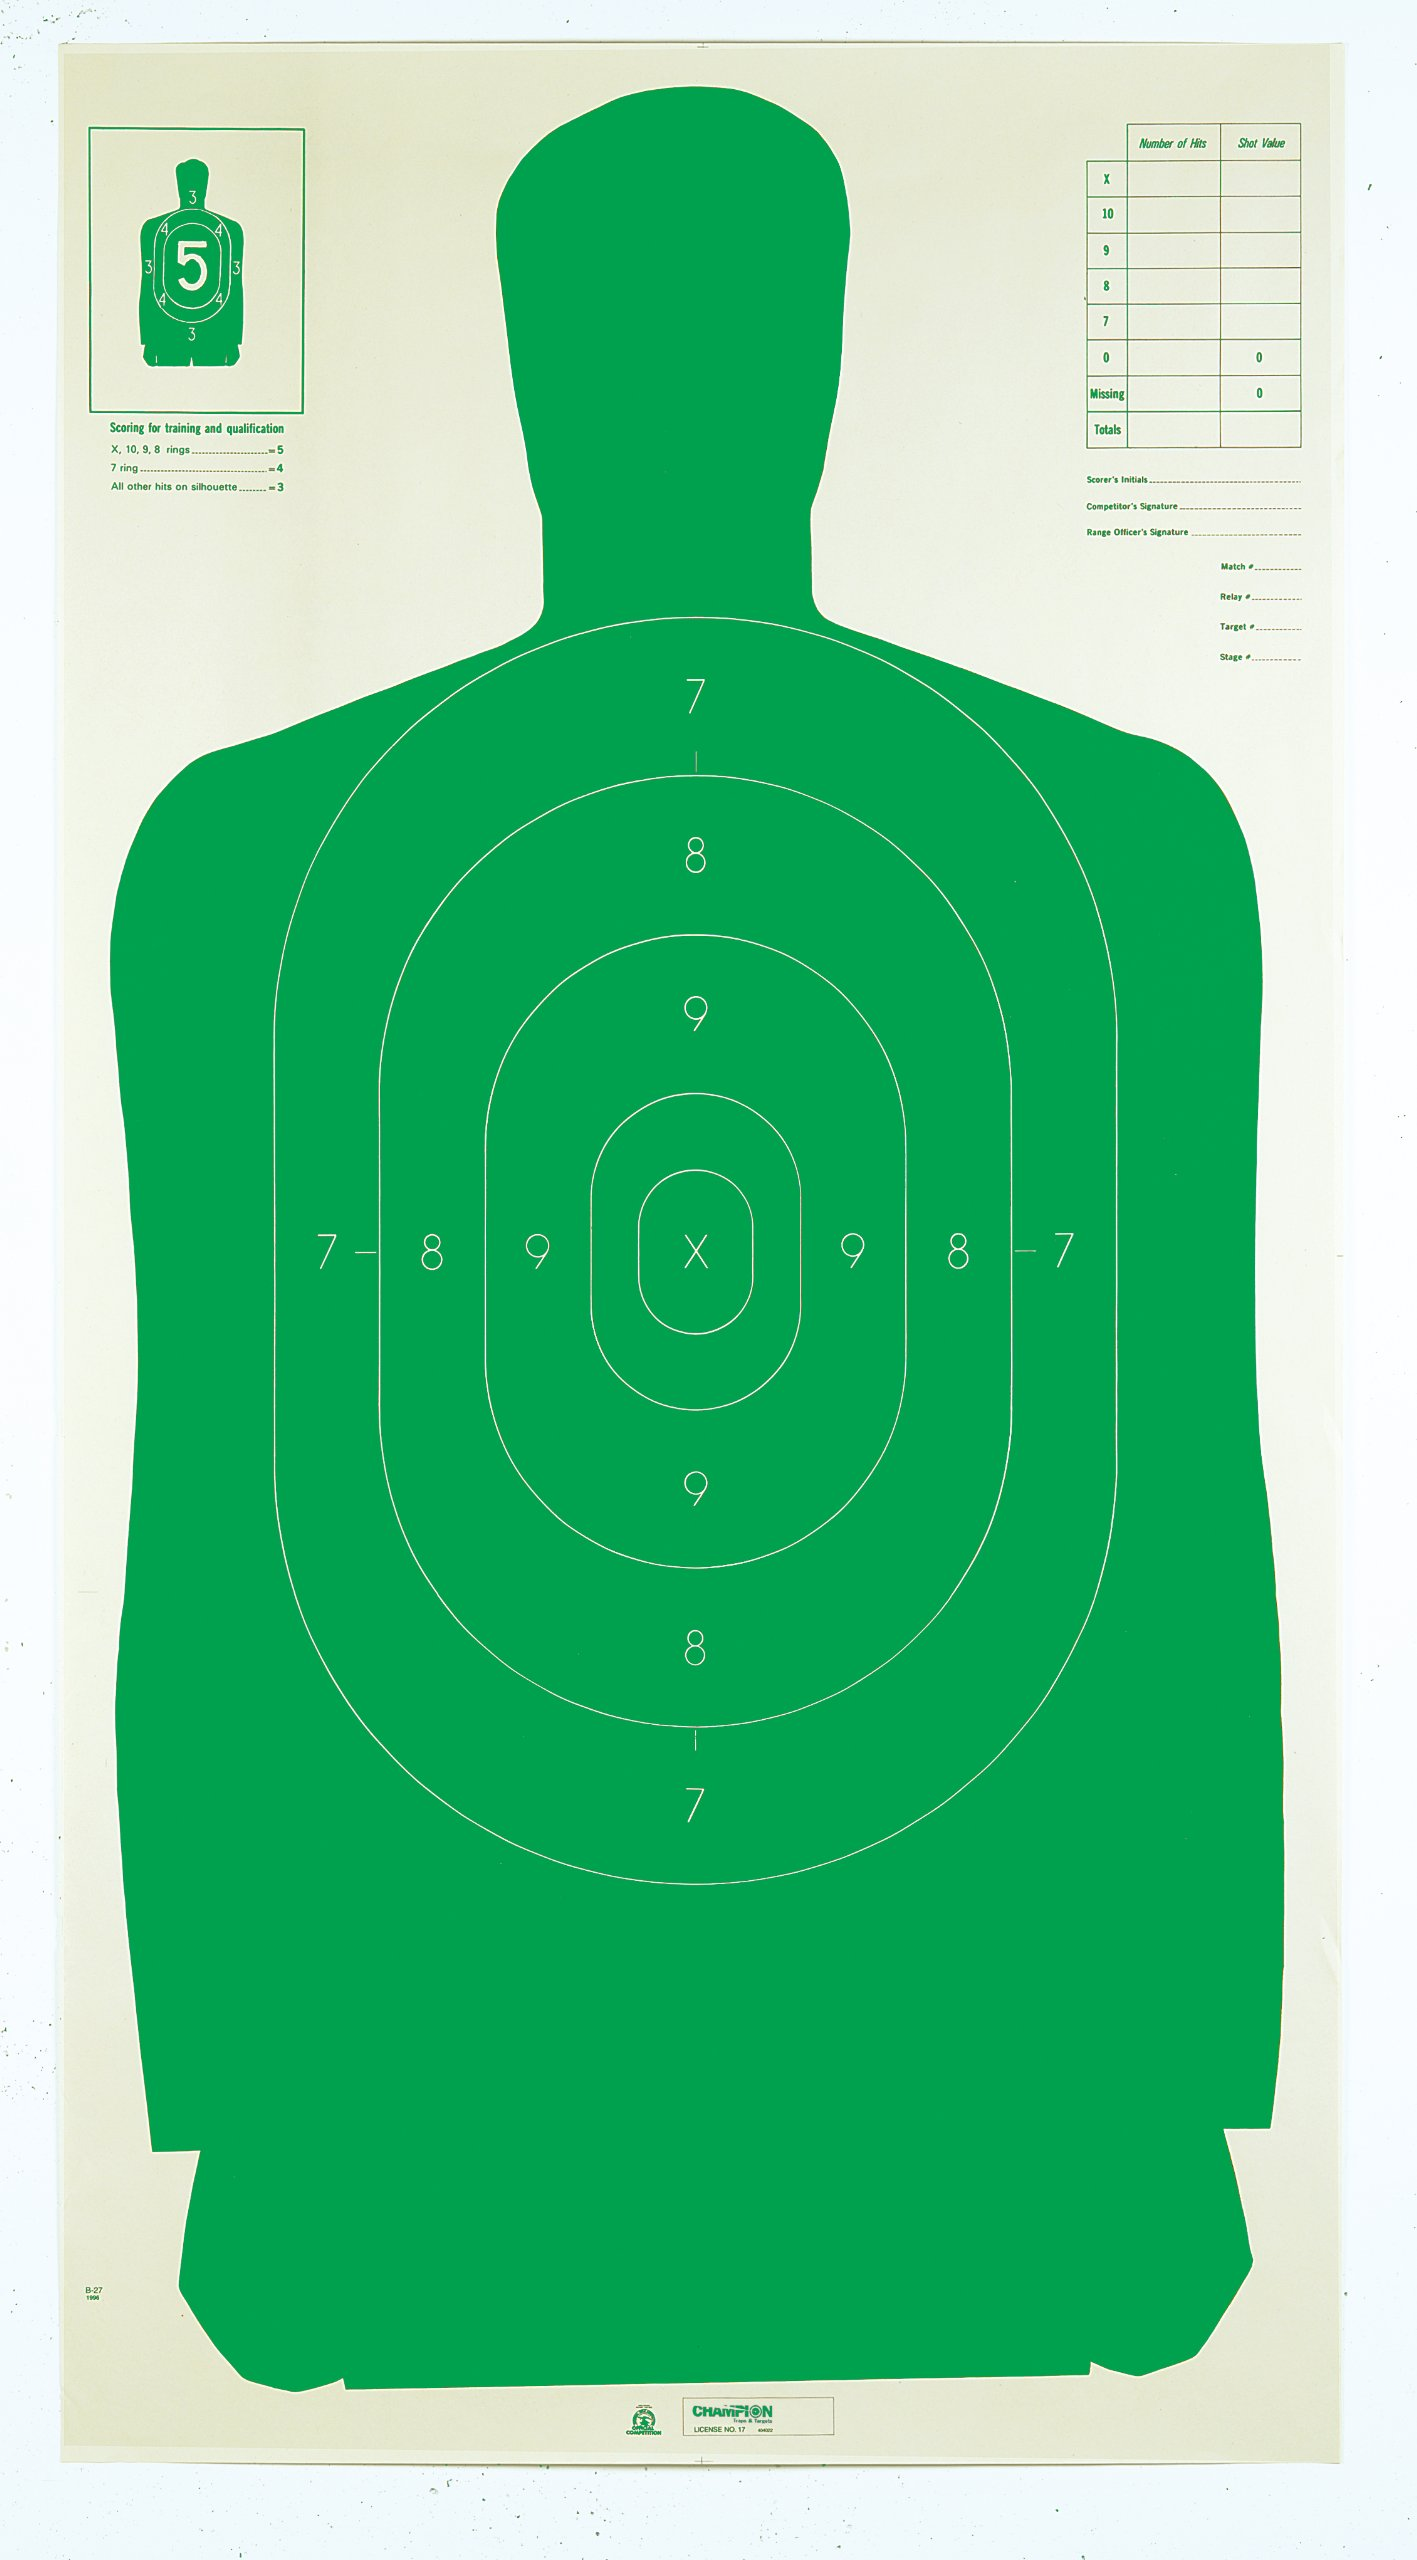 Champion LE B27FSA 24x45-Inch Green Silhouette Target (Pack of 100)